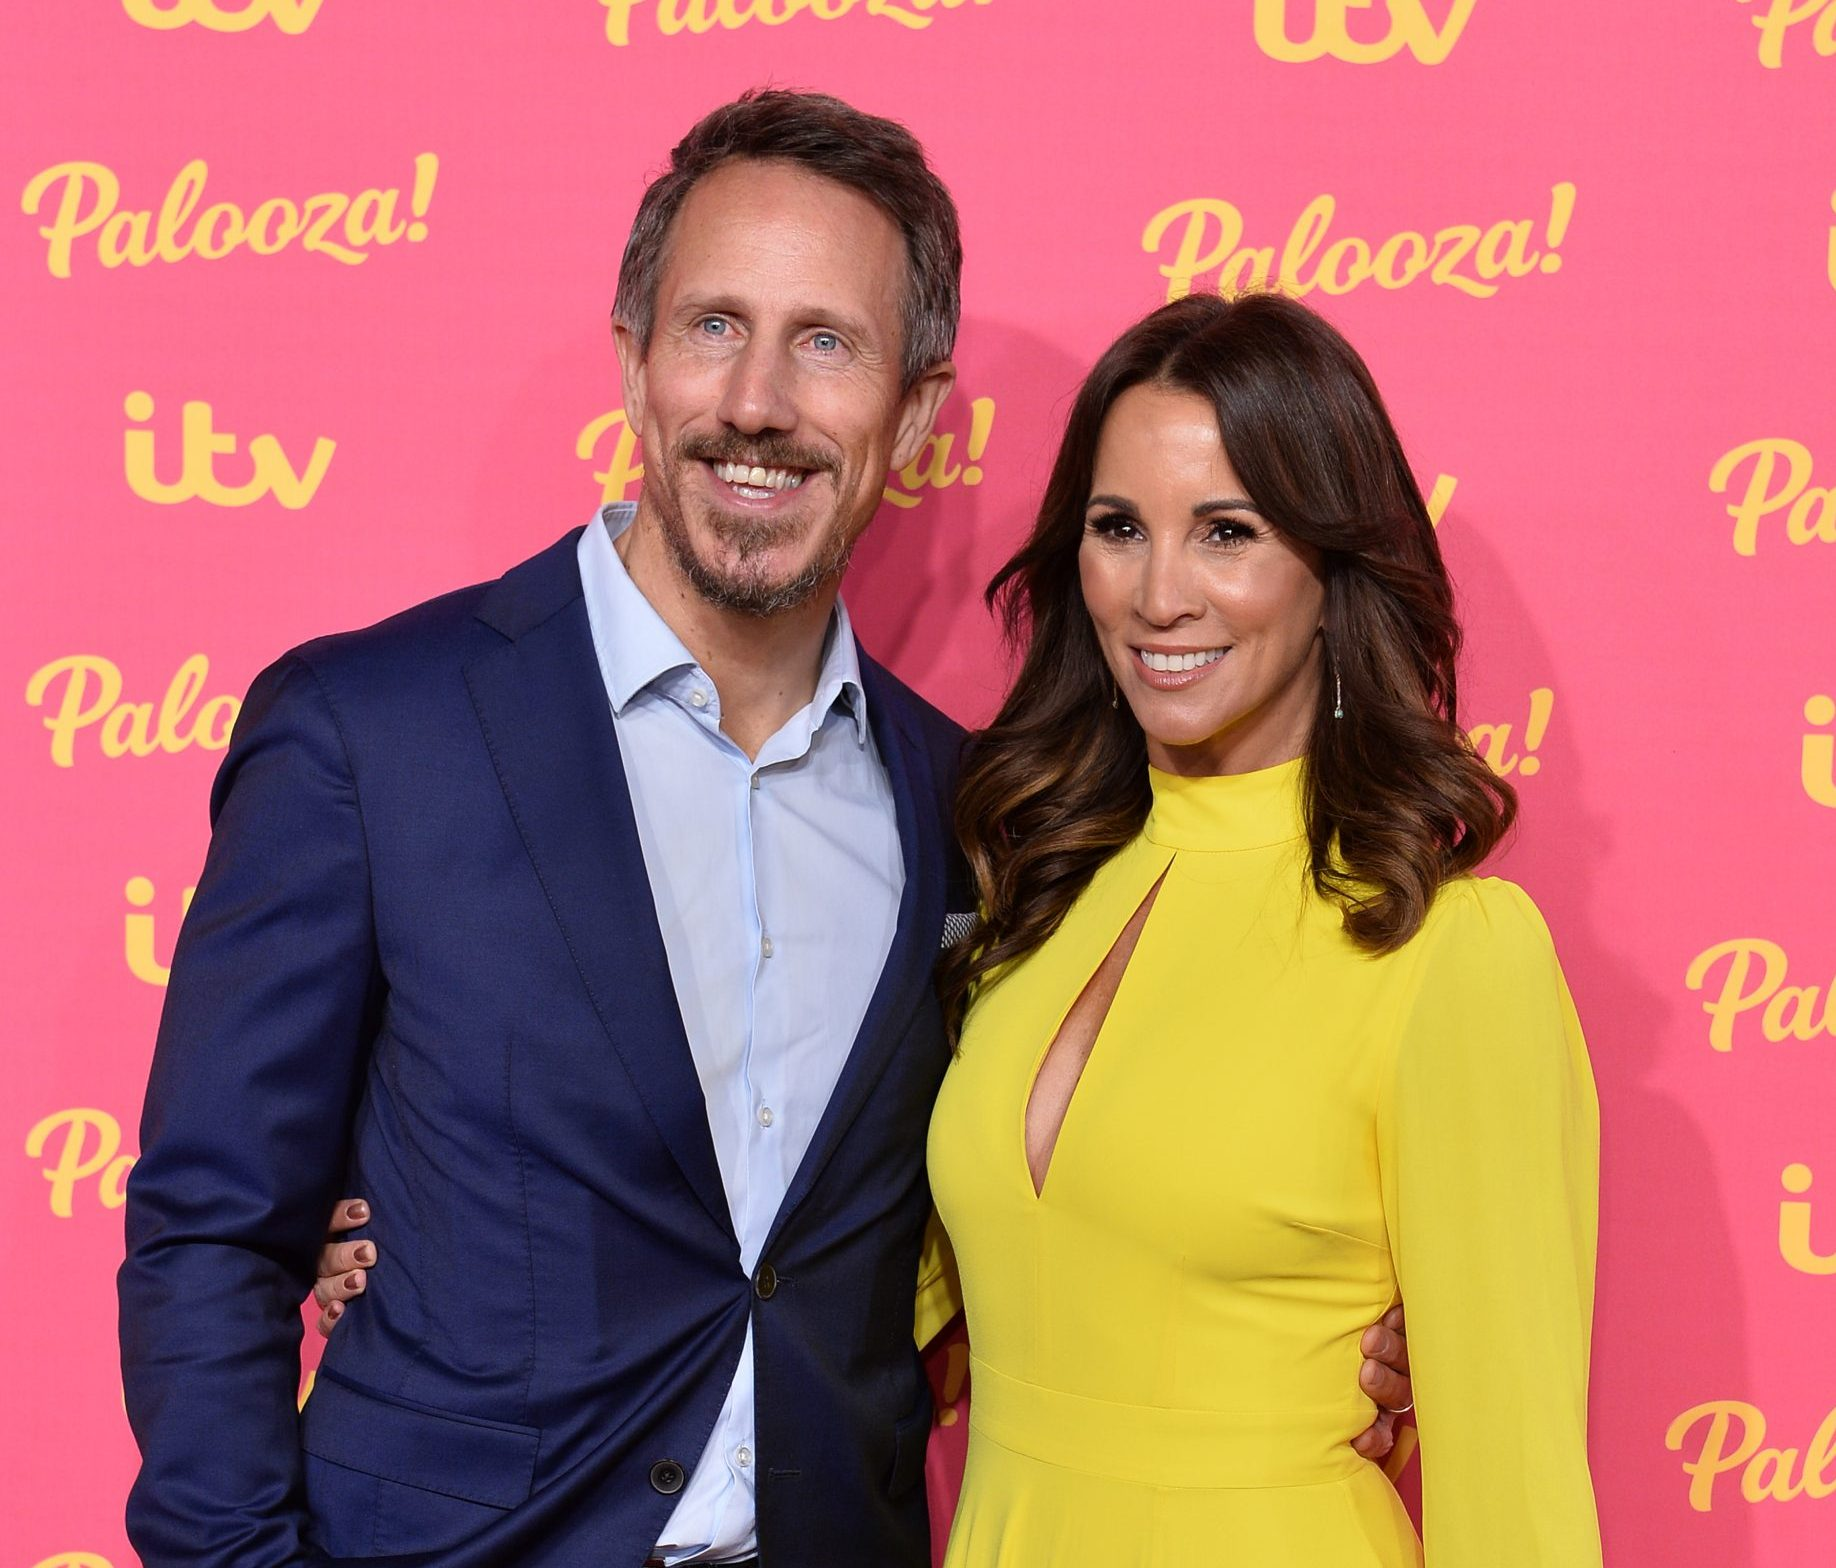 Andrea McLean opens up about feeling 'lost and vulnerable' before marriage counselling